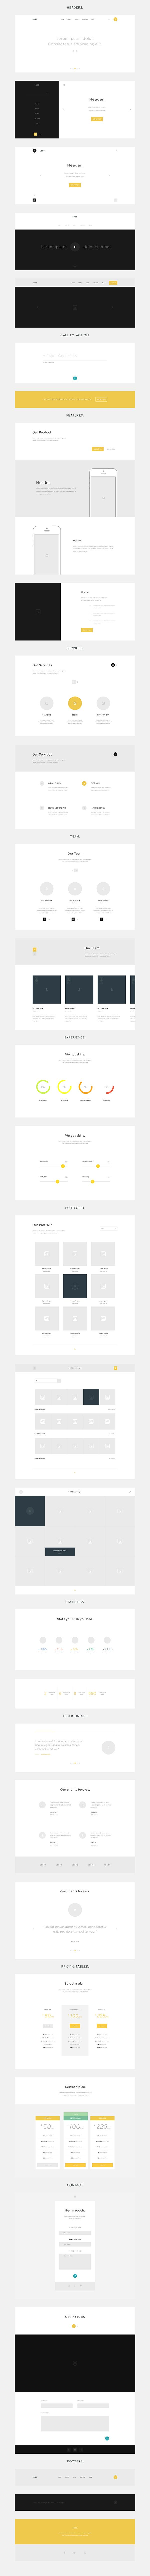 Great design resource for beautiful & simple UI / UX. One Page Website Wireframes #2 | GraphicBurger